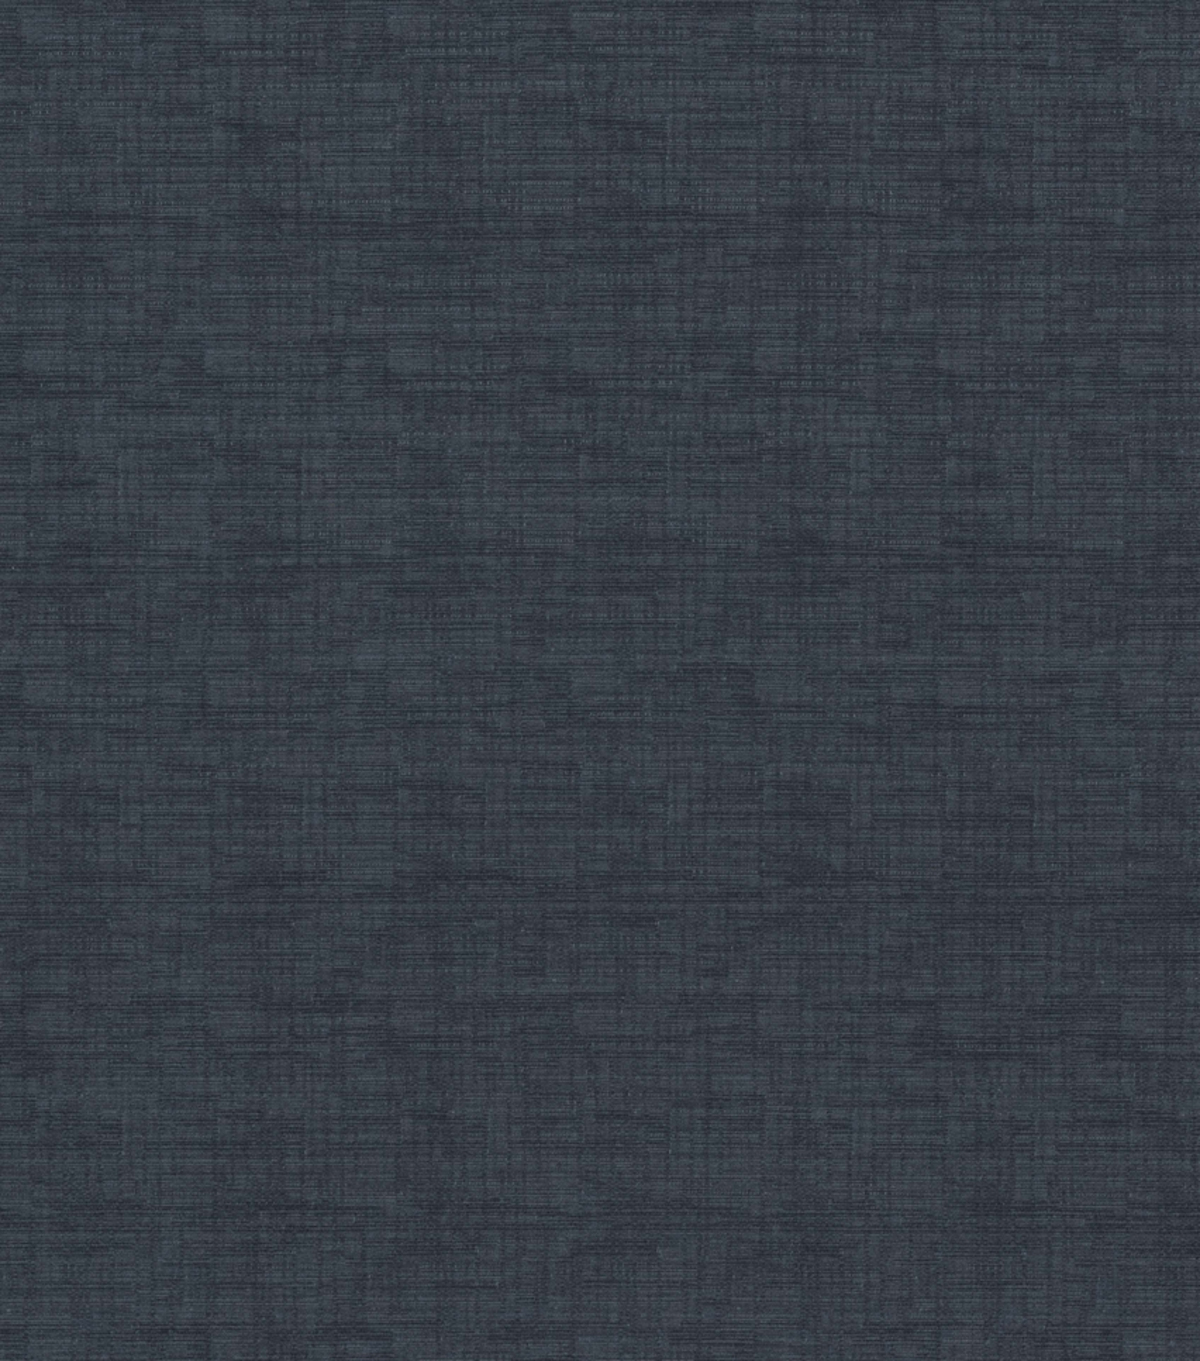 Home Decor 8\u0022x8\u0022 Fabric Swatch-Aspen Navy